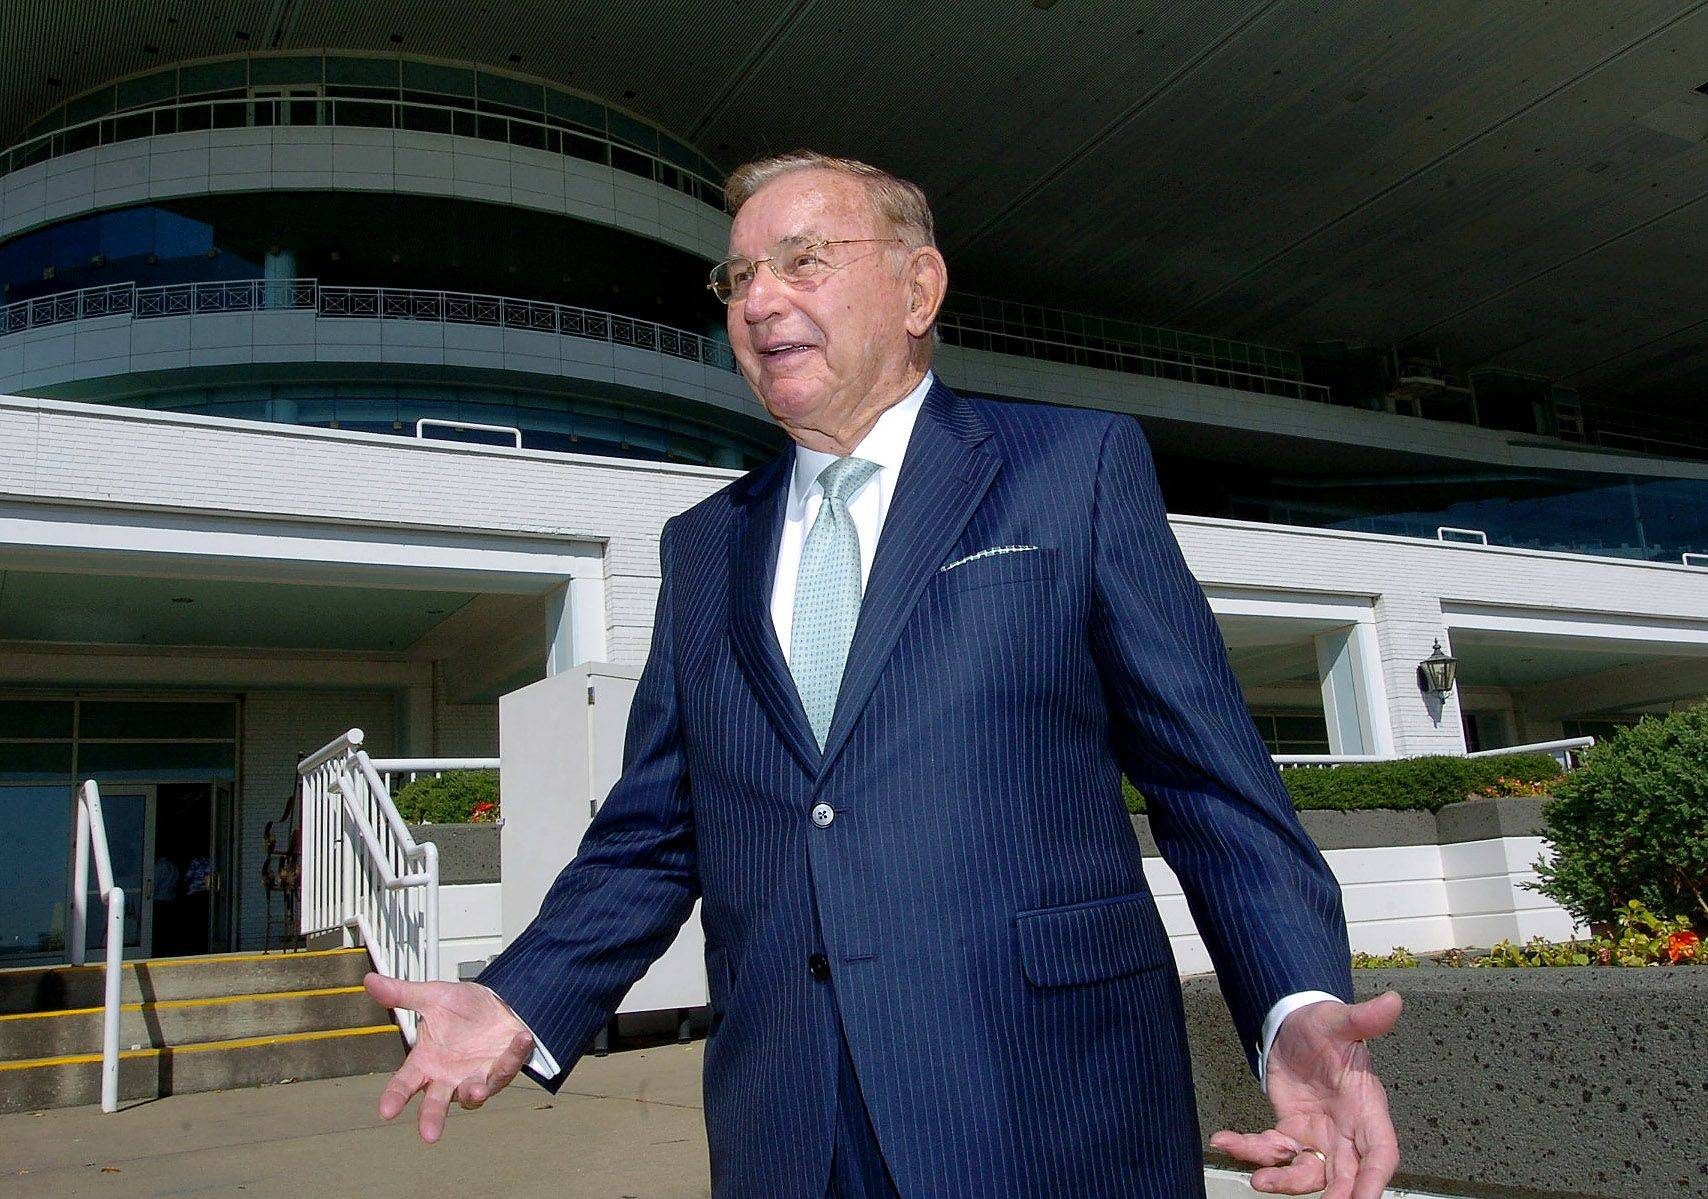 Arlington Park owner Richard Duchossois regularly walks around the track and leaves pink notes for his employees -- who know they mean something isn't up to snuff.